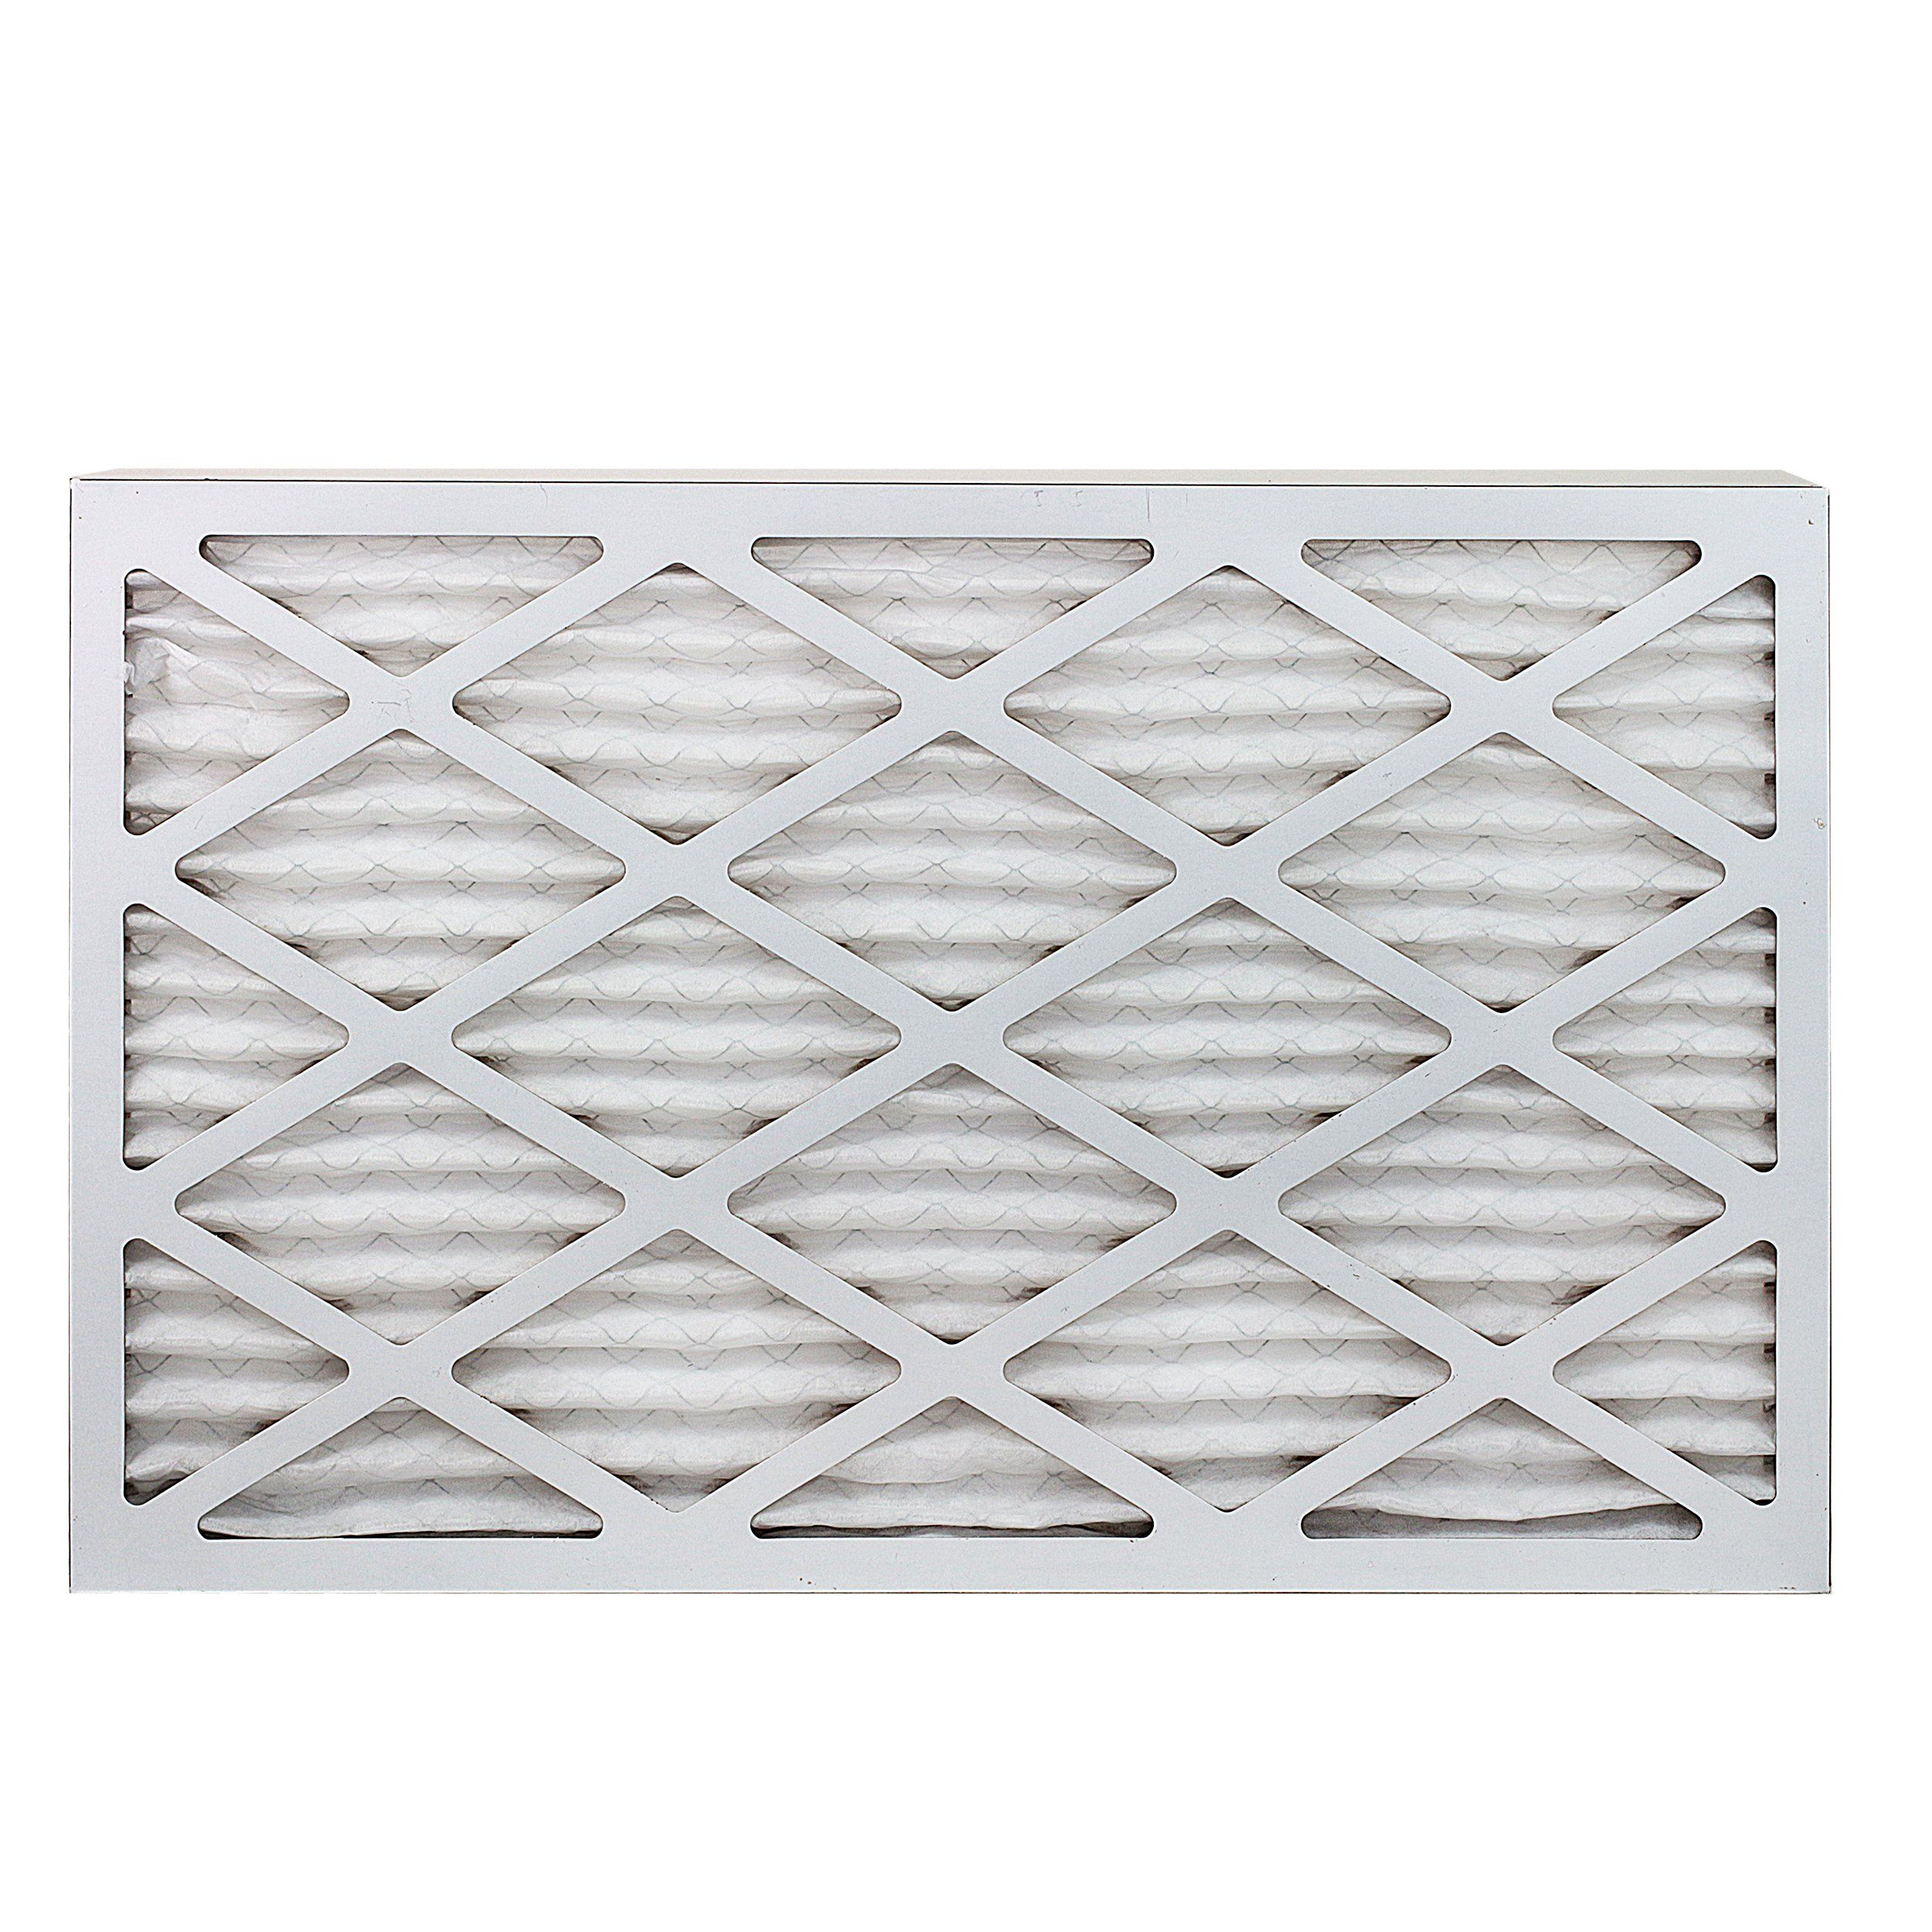 FilterBuy 15x25x1 MERV 8 Pleated AC Furnace Air Filter